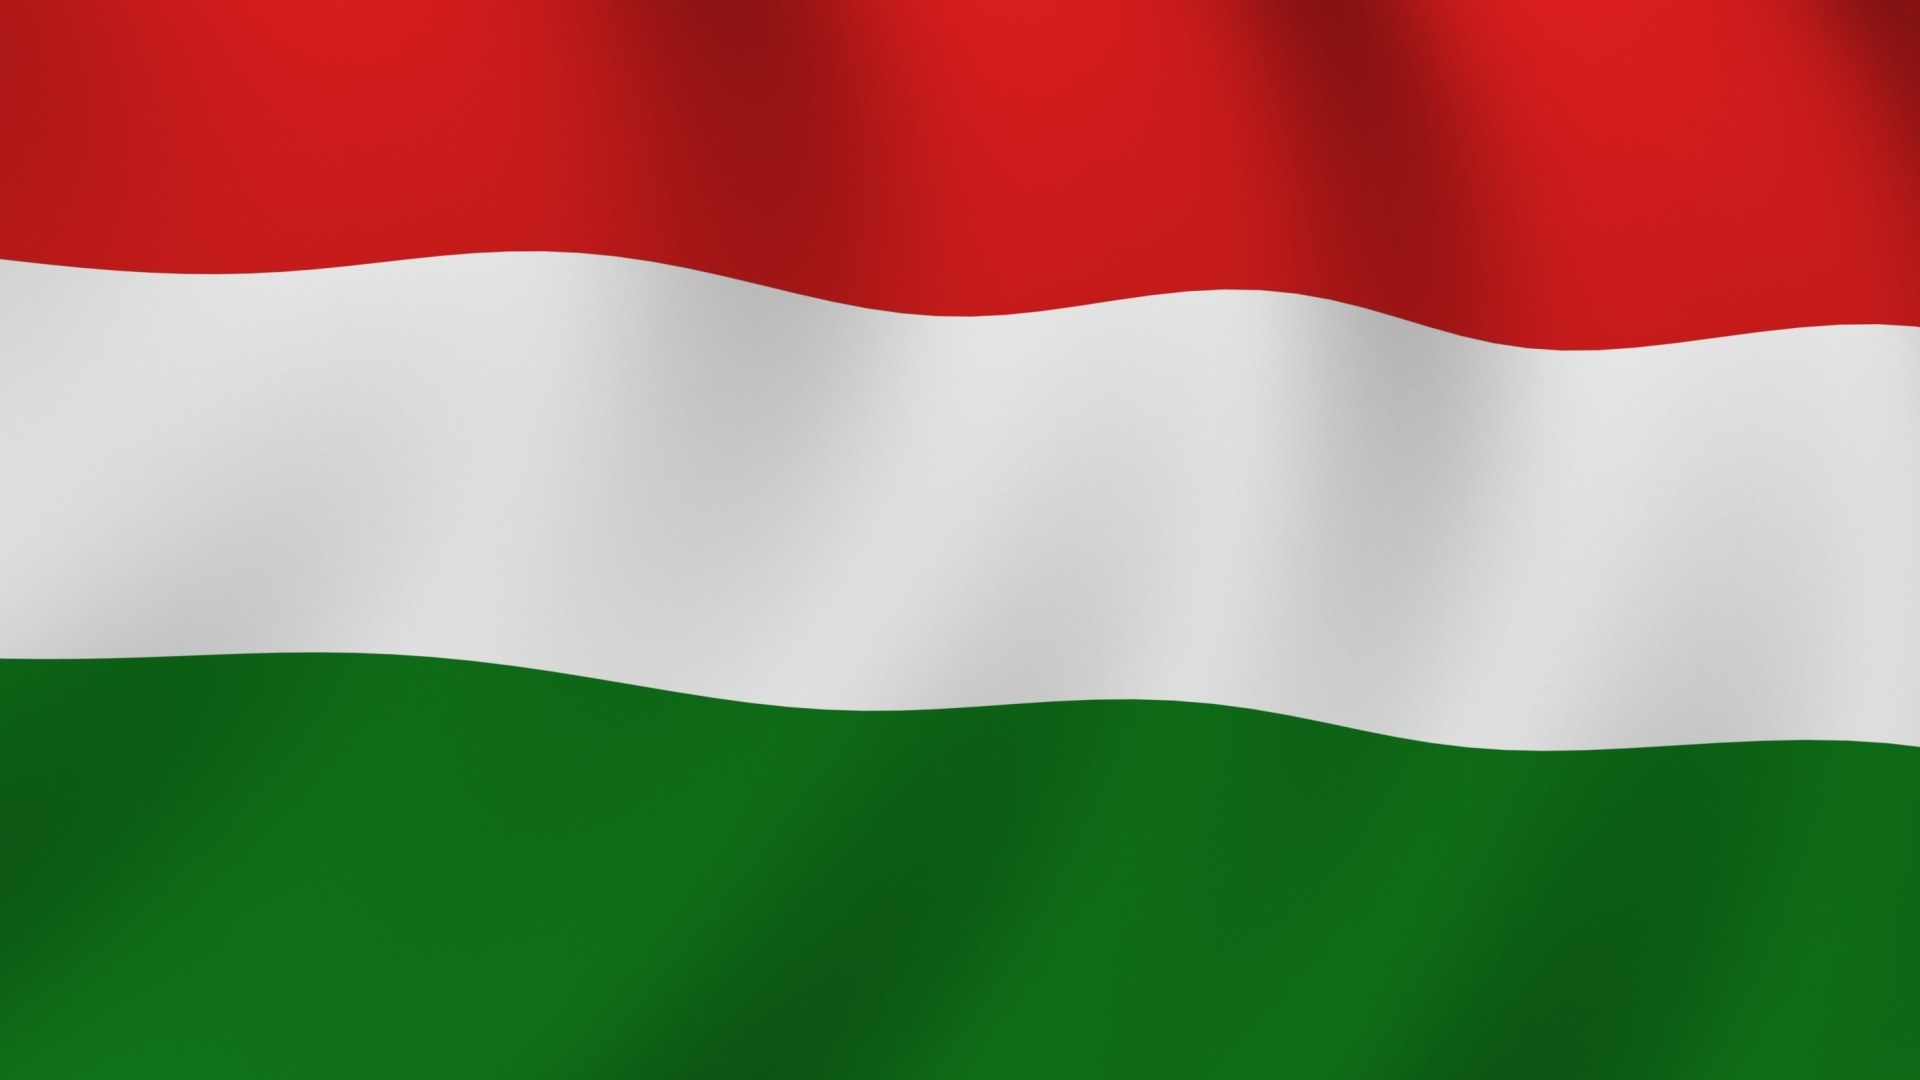 hungary flag background wallpapers wallpaper 1920x1080 1920x1080